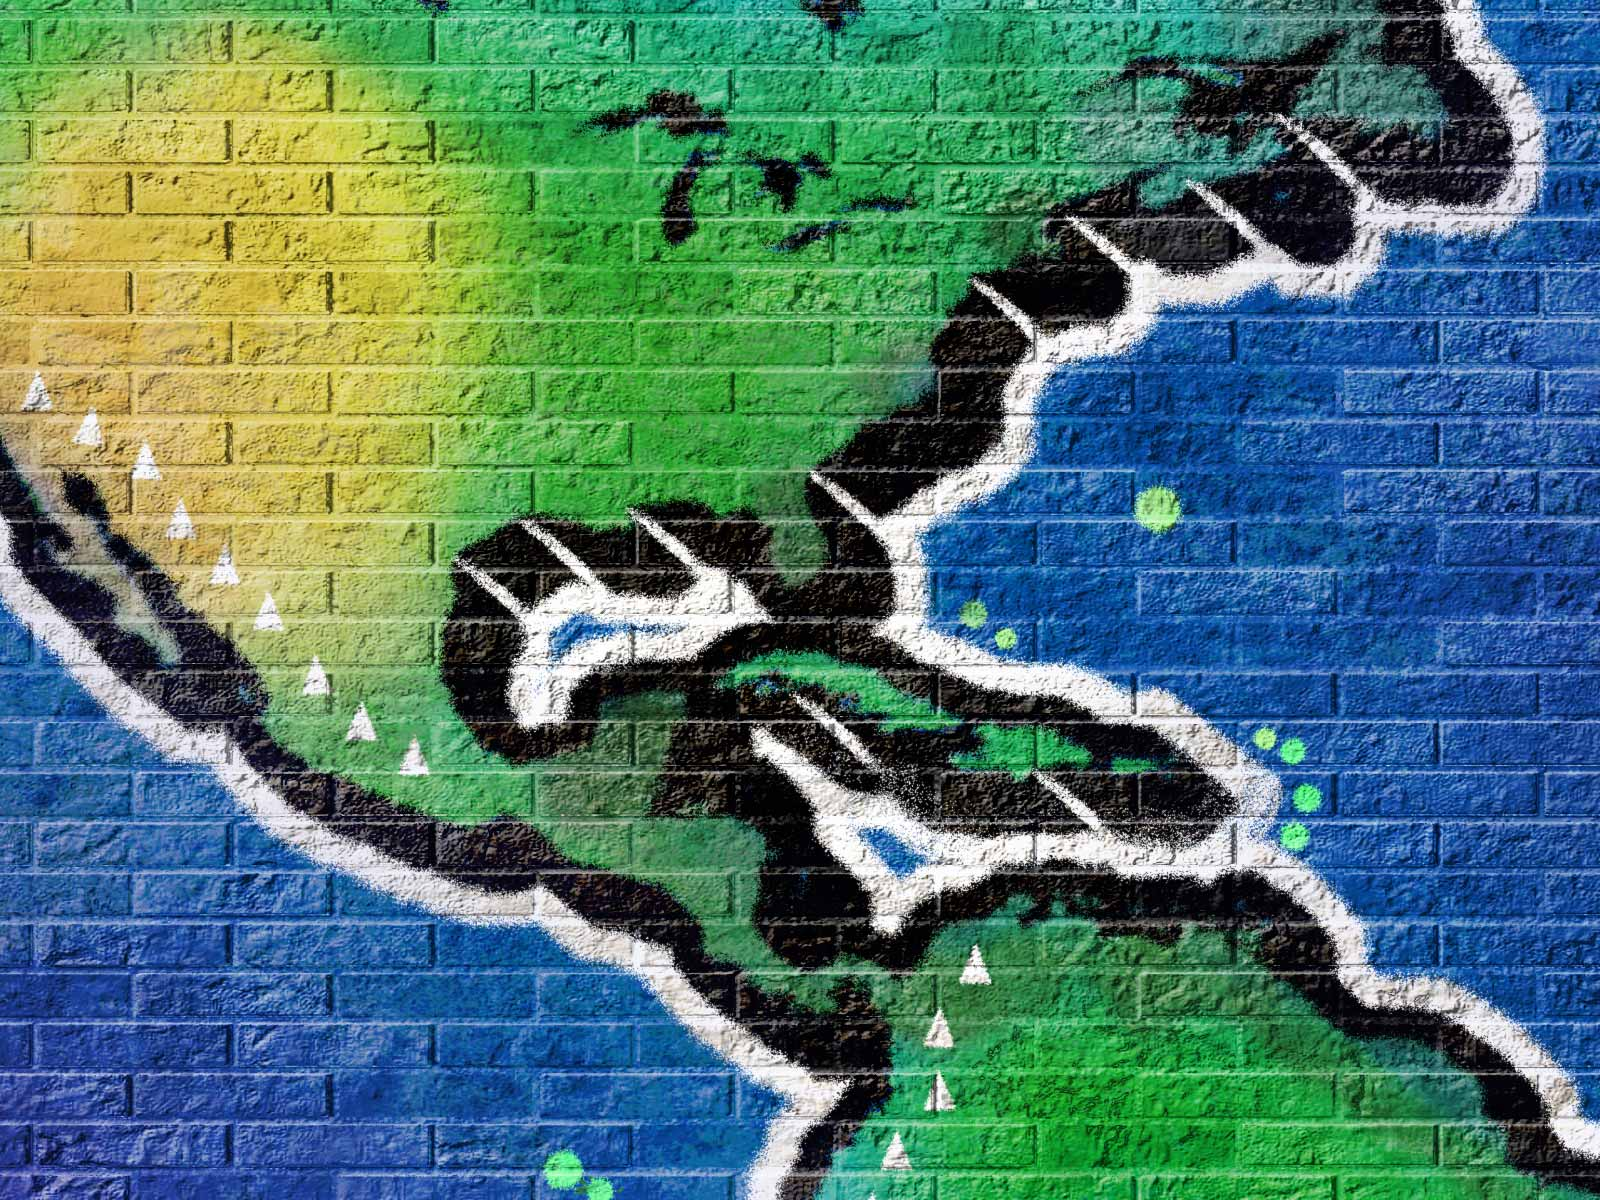 Detail of a virtual graffiti world map showing the Caribean and part of North and South America